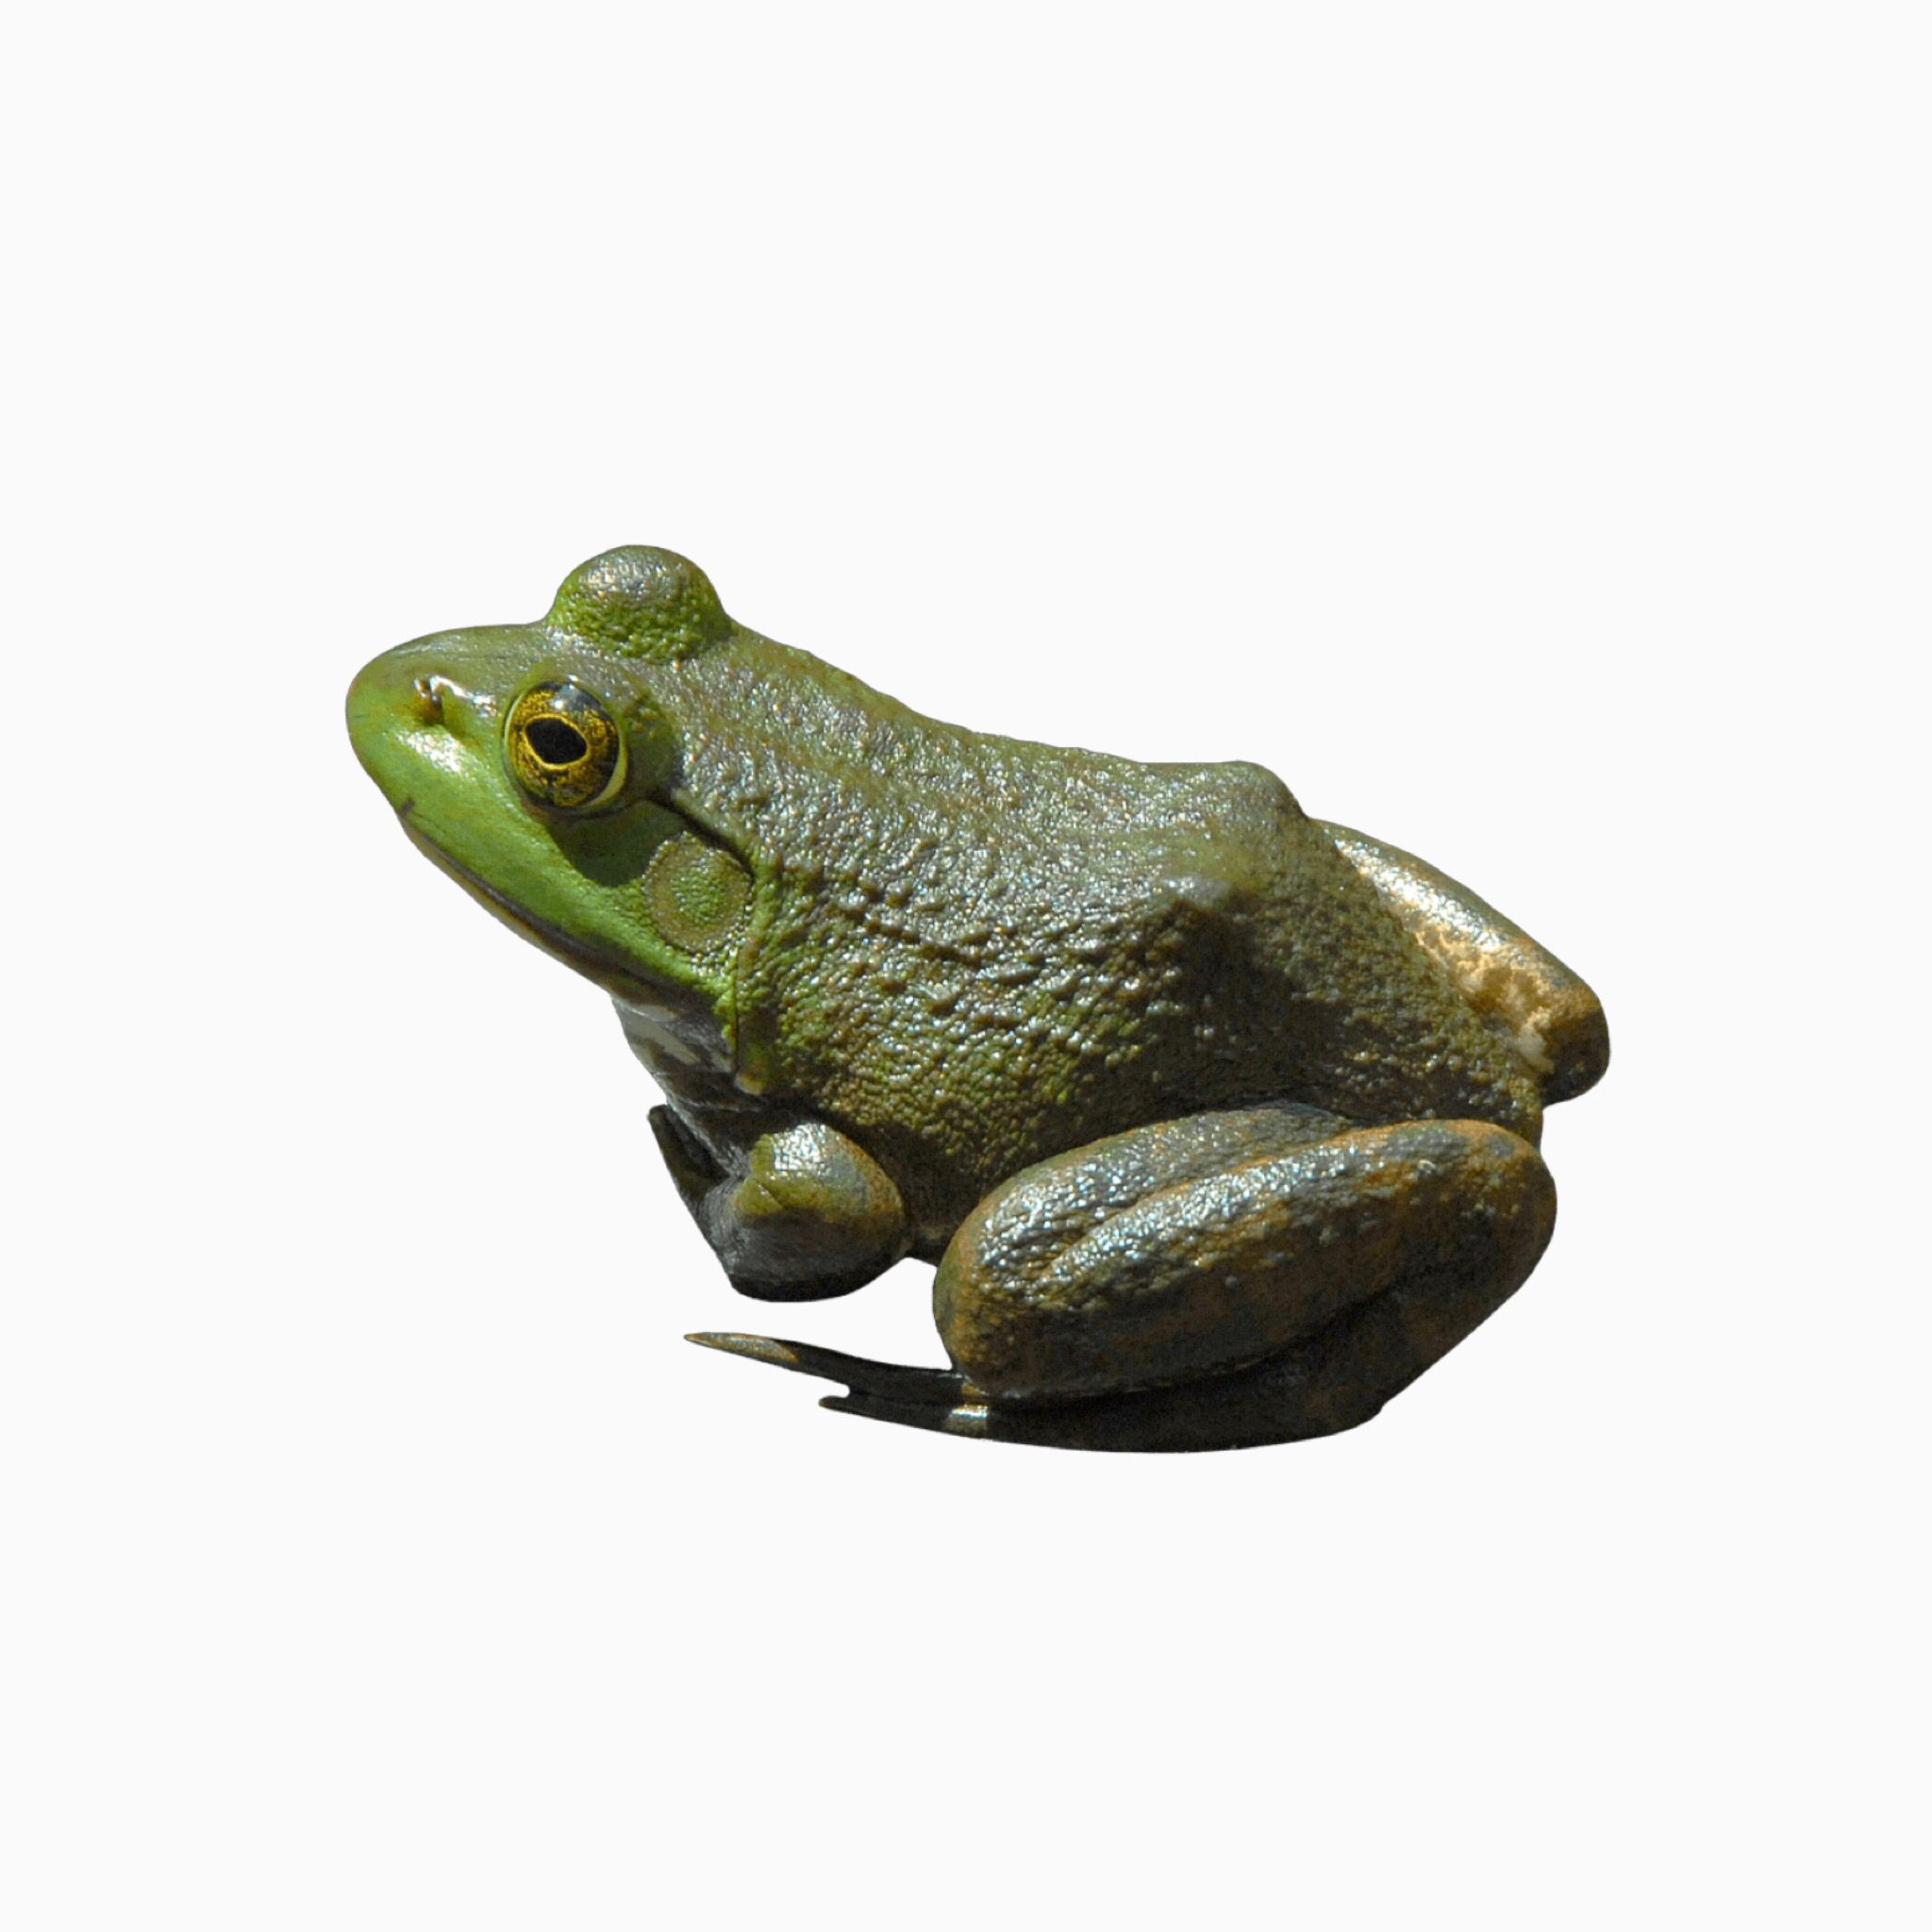 Frog Png Cloudyy Png Insta Png Small Pets Flower Aesthetic